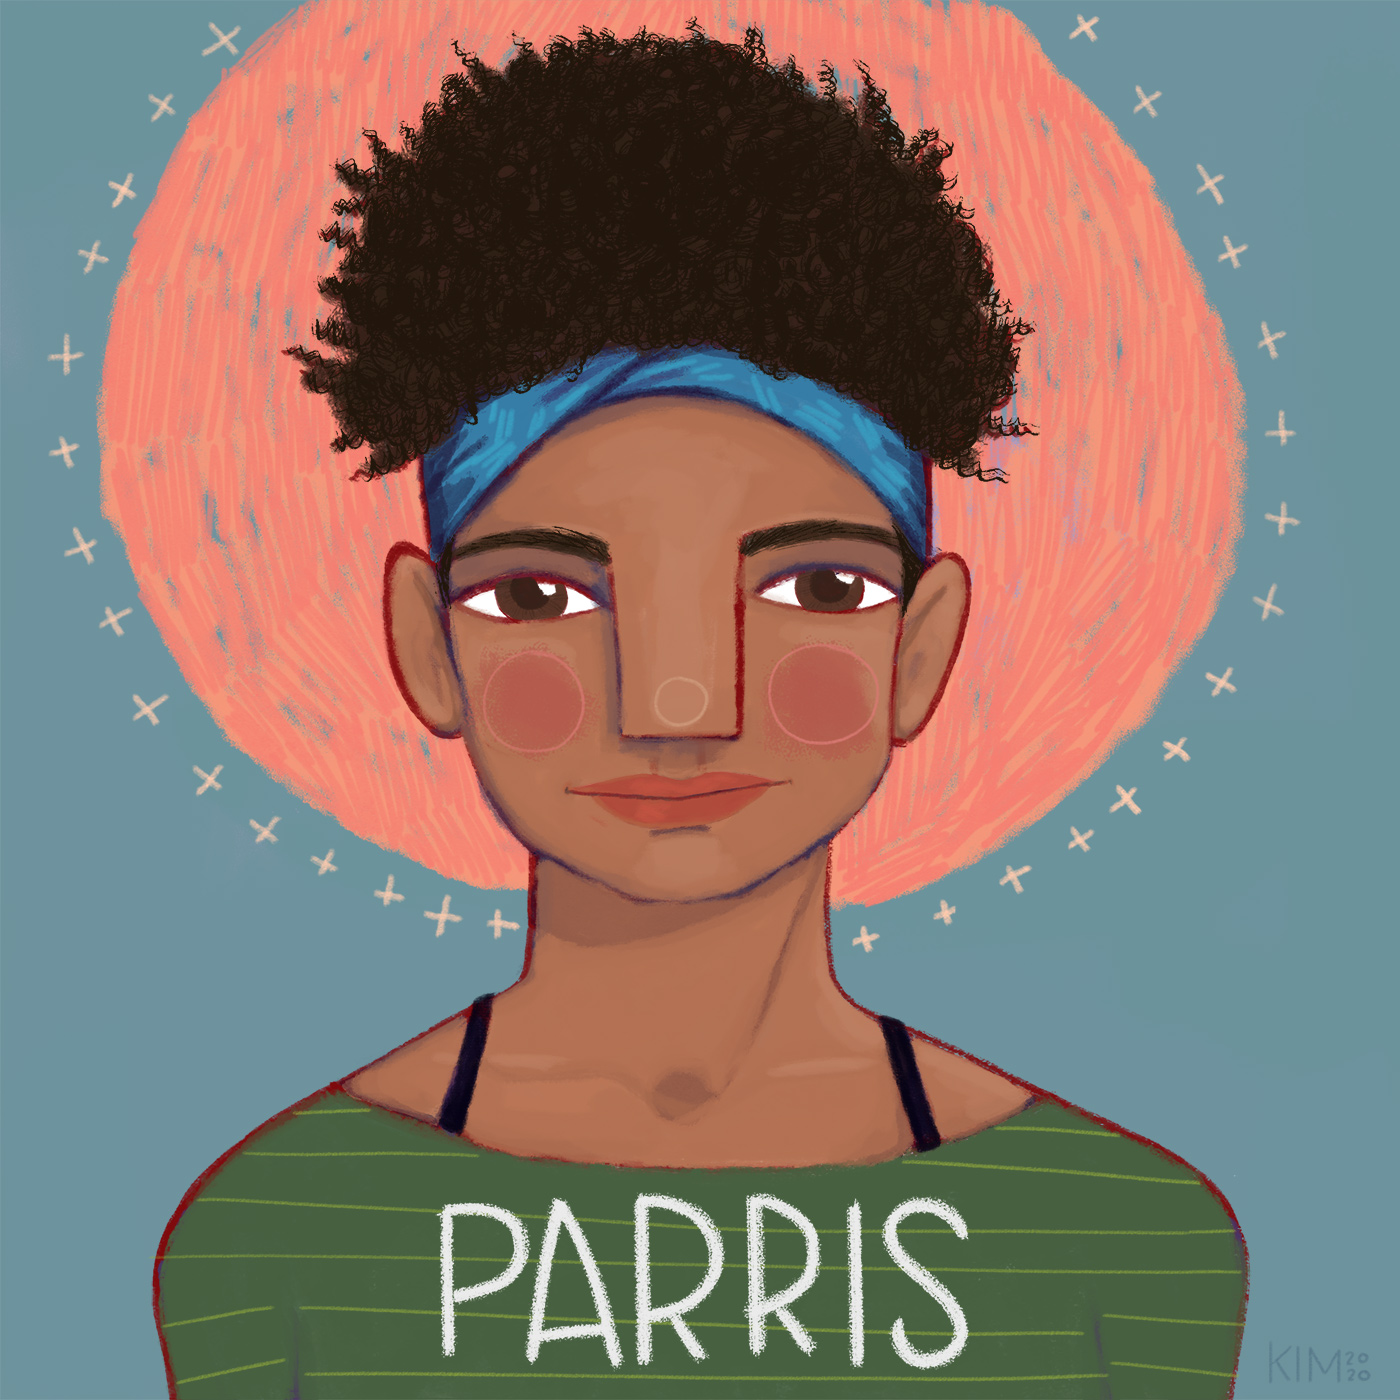 Illustration of Parris, a foster youth in Michigan who is waiting to be adopted.